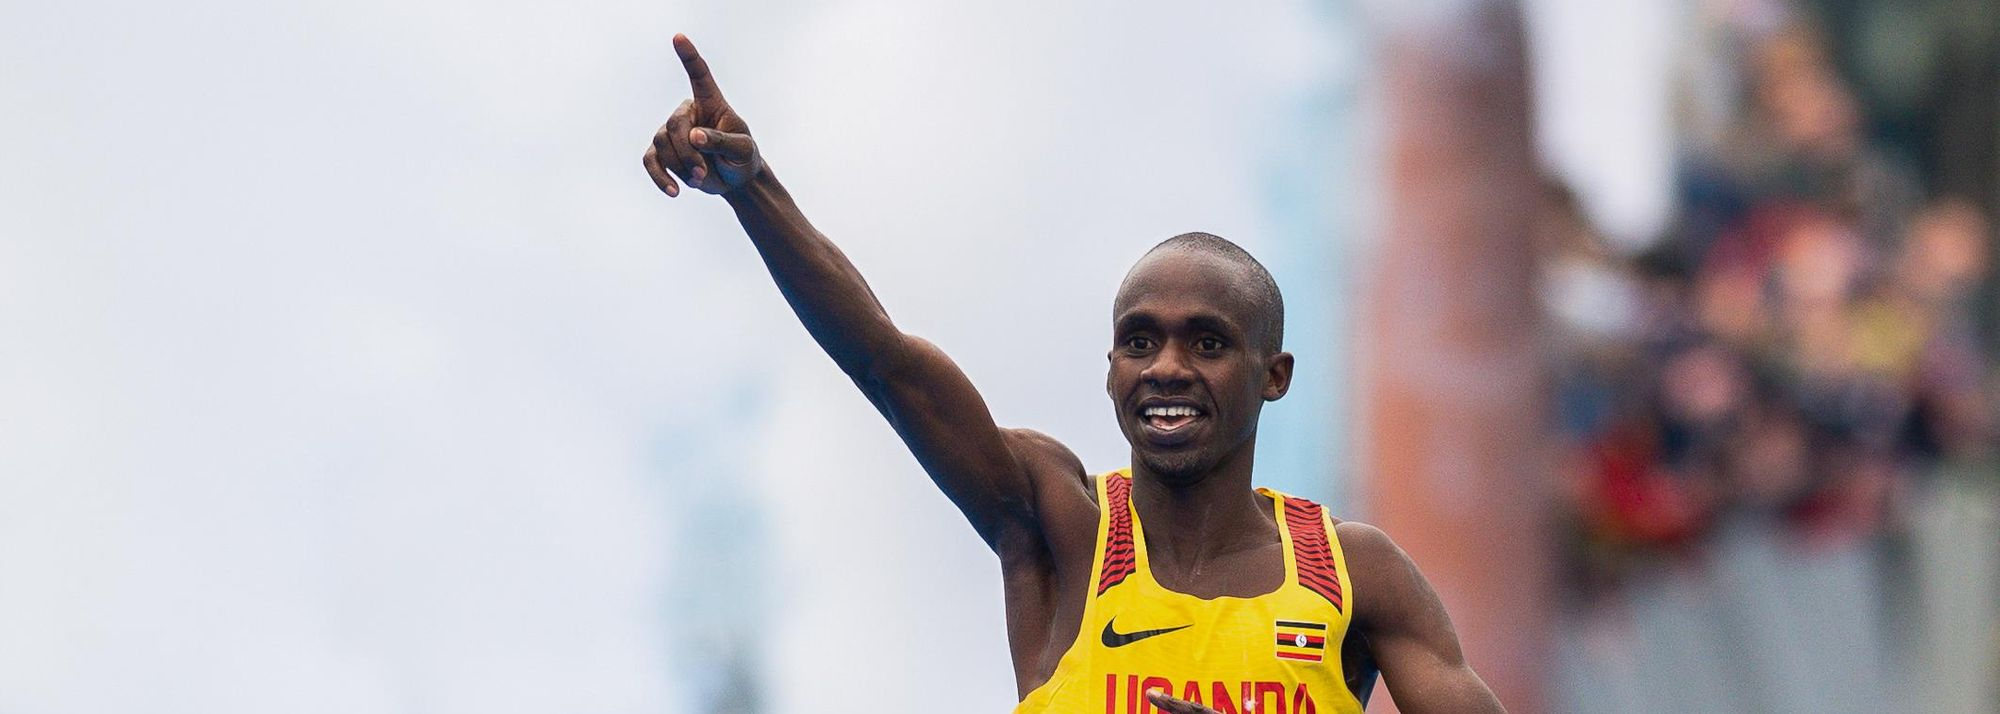 Kiplimo's rise continues with first senior world title